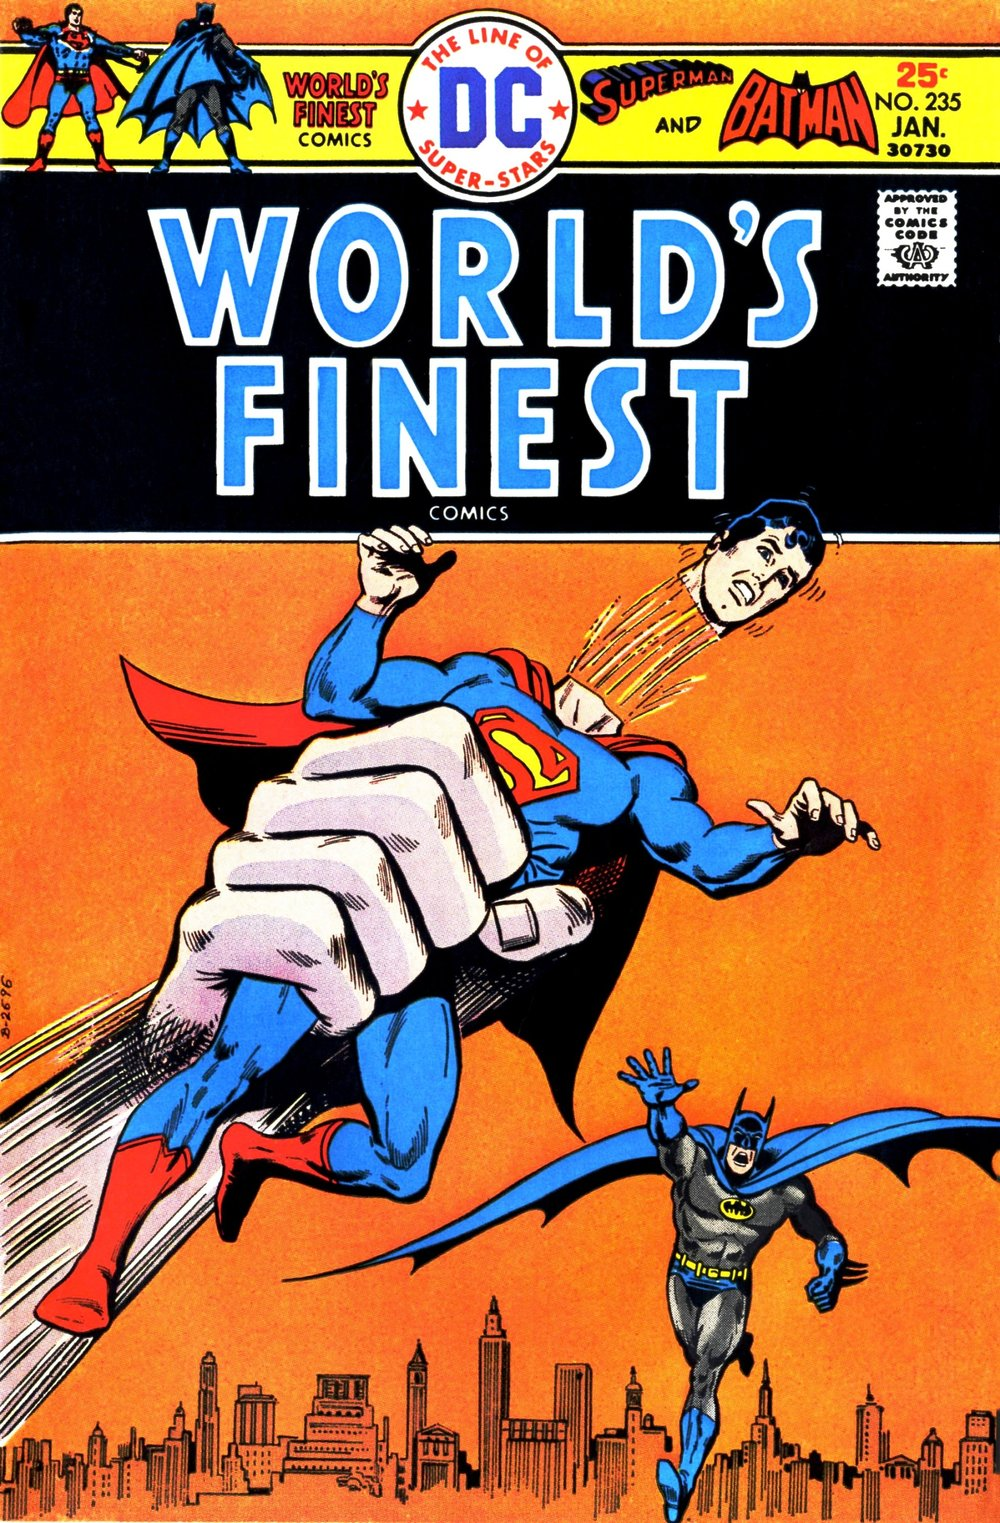 World's Finest Comics (1941) #235, cover penciled by Ernie Chan & inked by John Calnan.